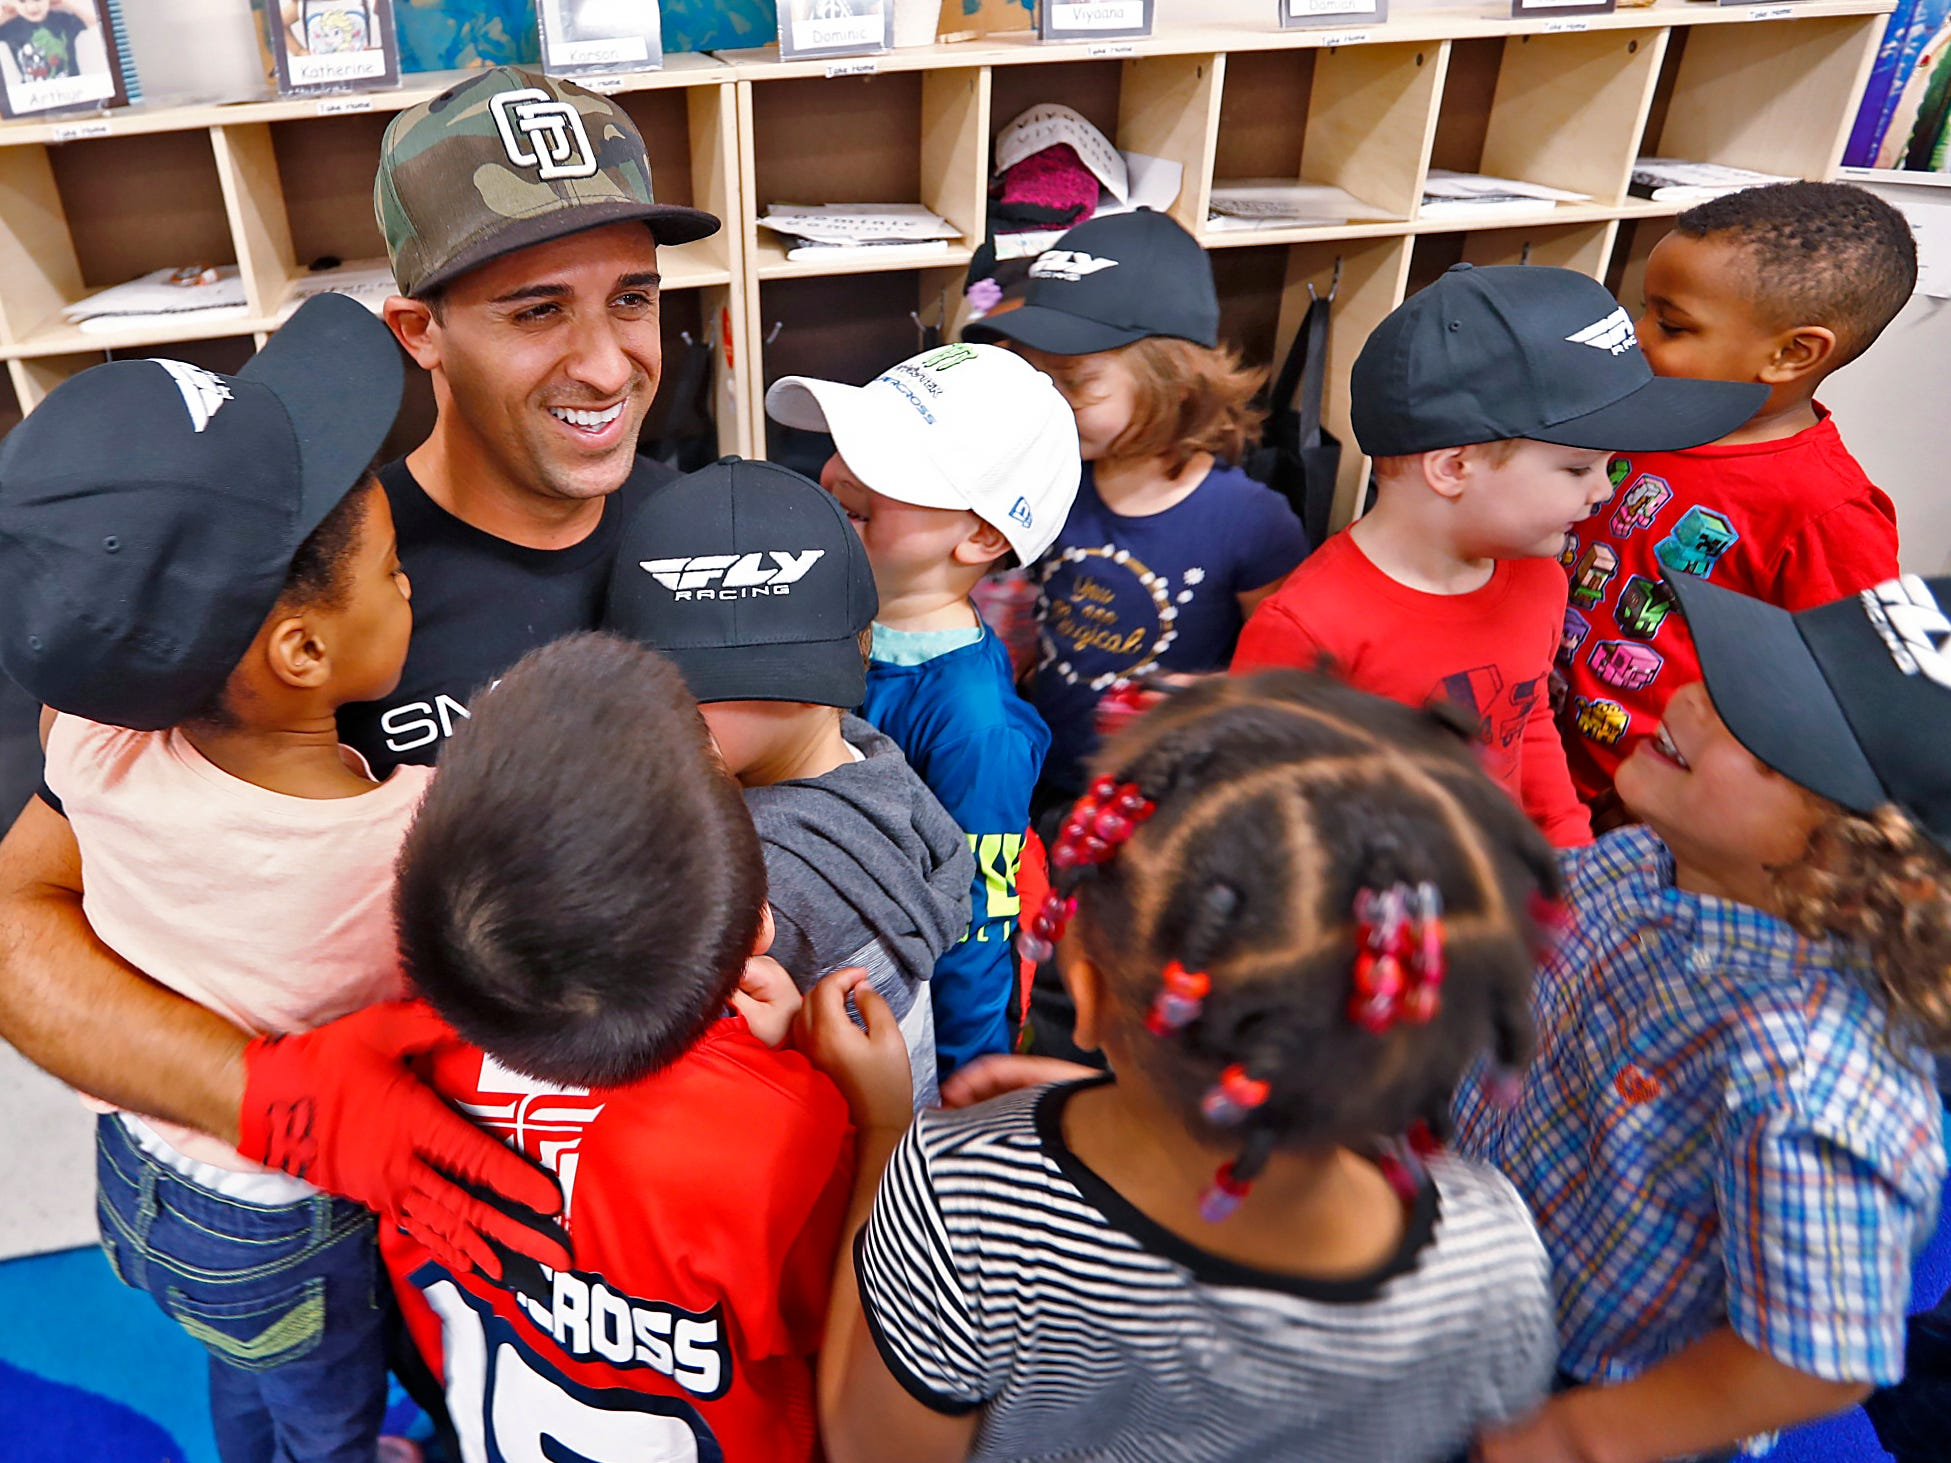 Supercross racer Mike Alessi laughs while getting a group hug as he visitswith kids at Day Early Learning Center, Thursday, March 14, 2019.  Alessi provided Supercross rider jerseys and hats for the kids and gave wagon rides, on a break before the upcoming Supercross race.